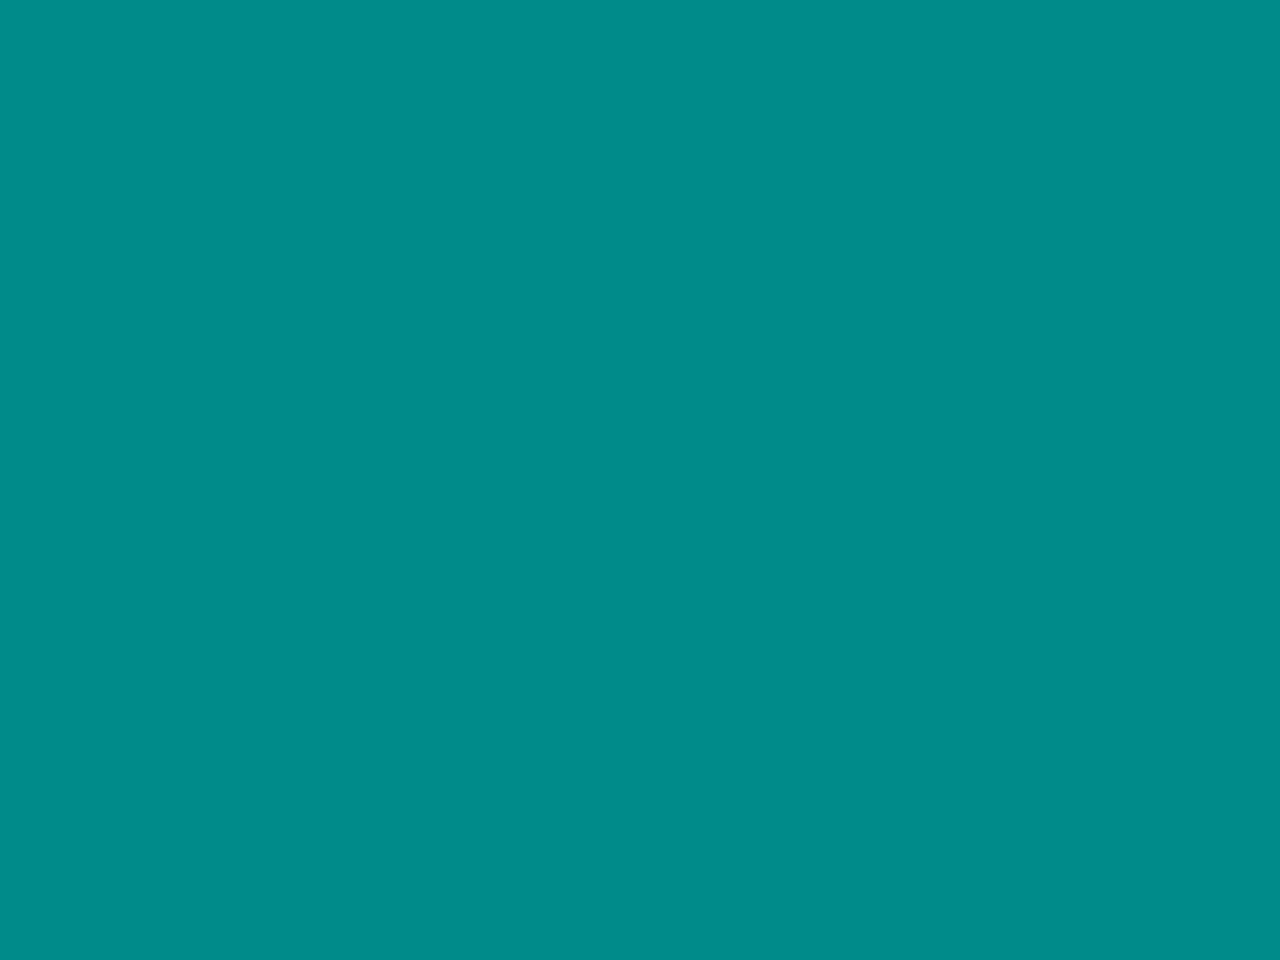 1280x960 Dark Cyan Solid Color Background